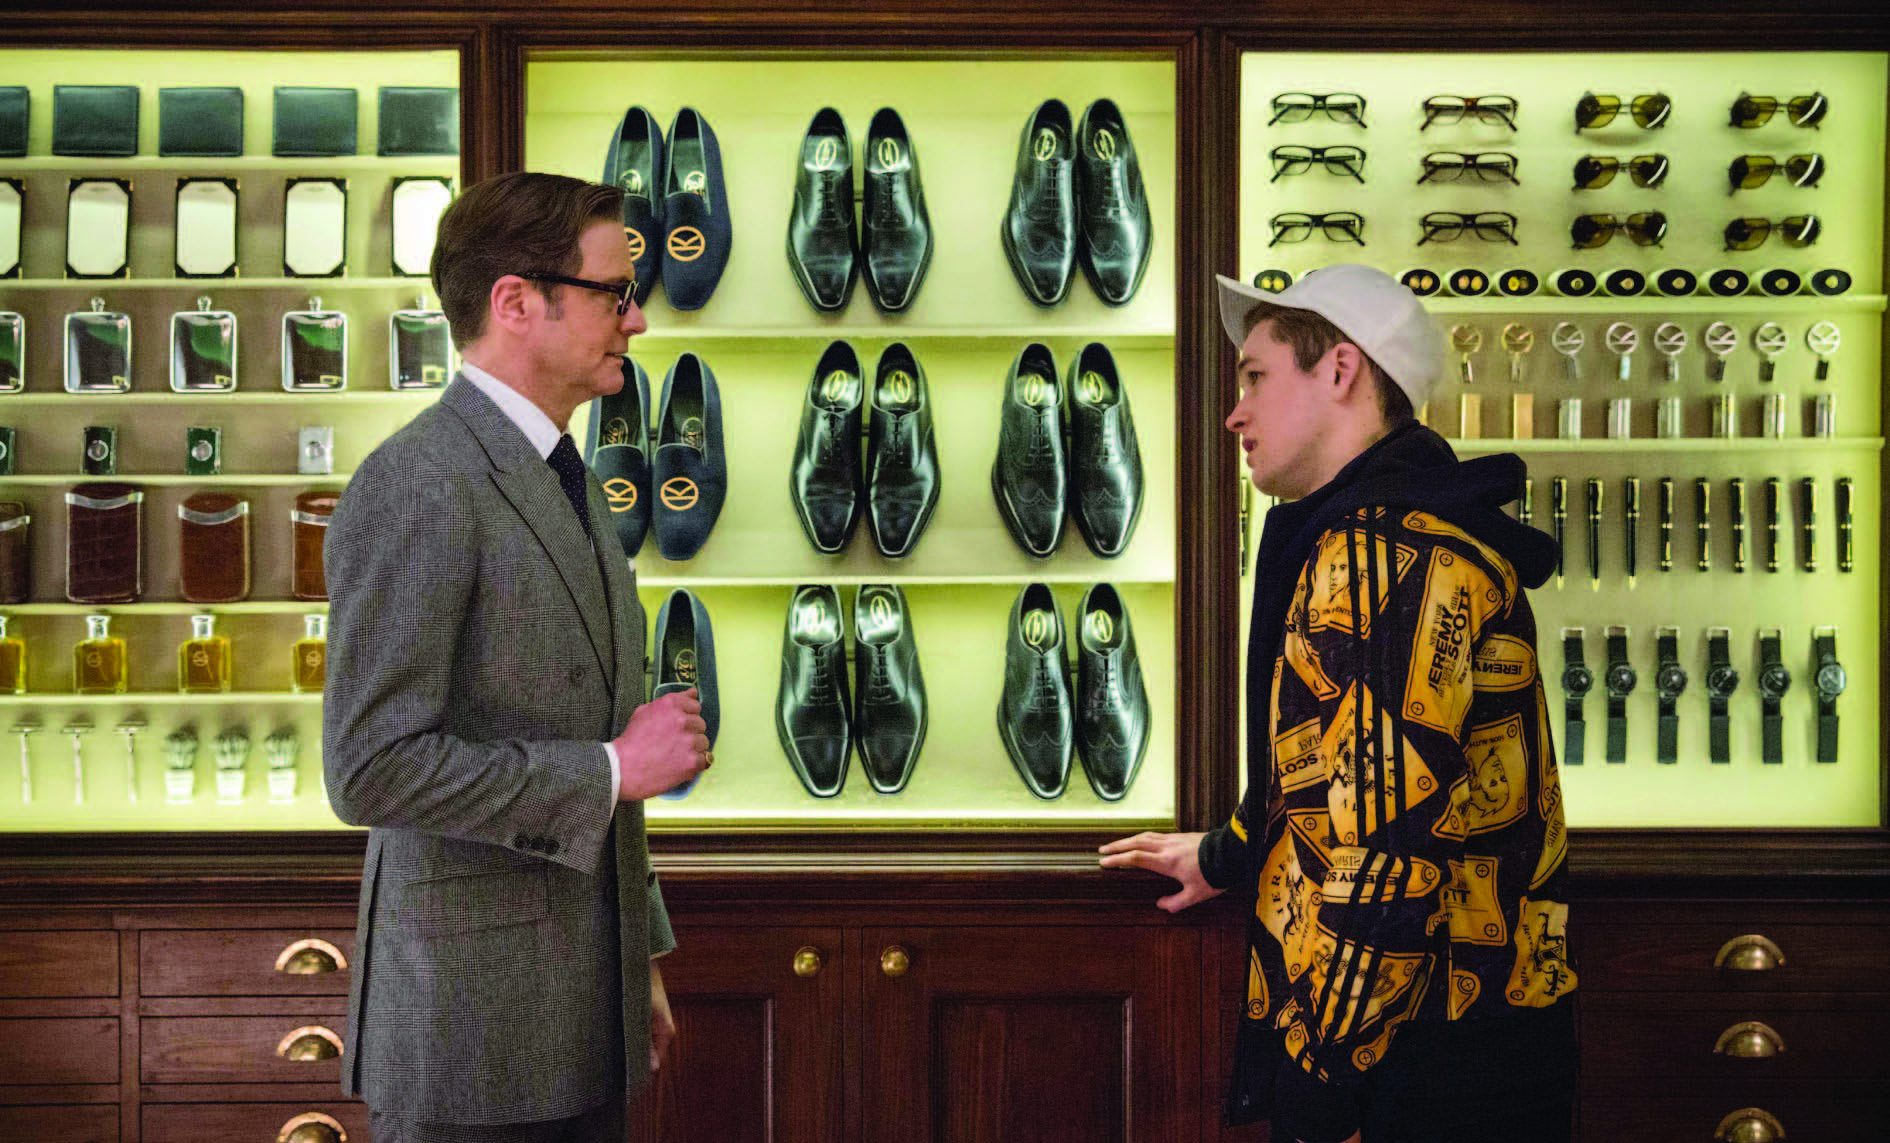 kingsman-hollywood-film-6-14.jpg